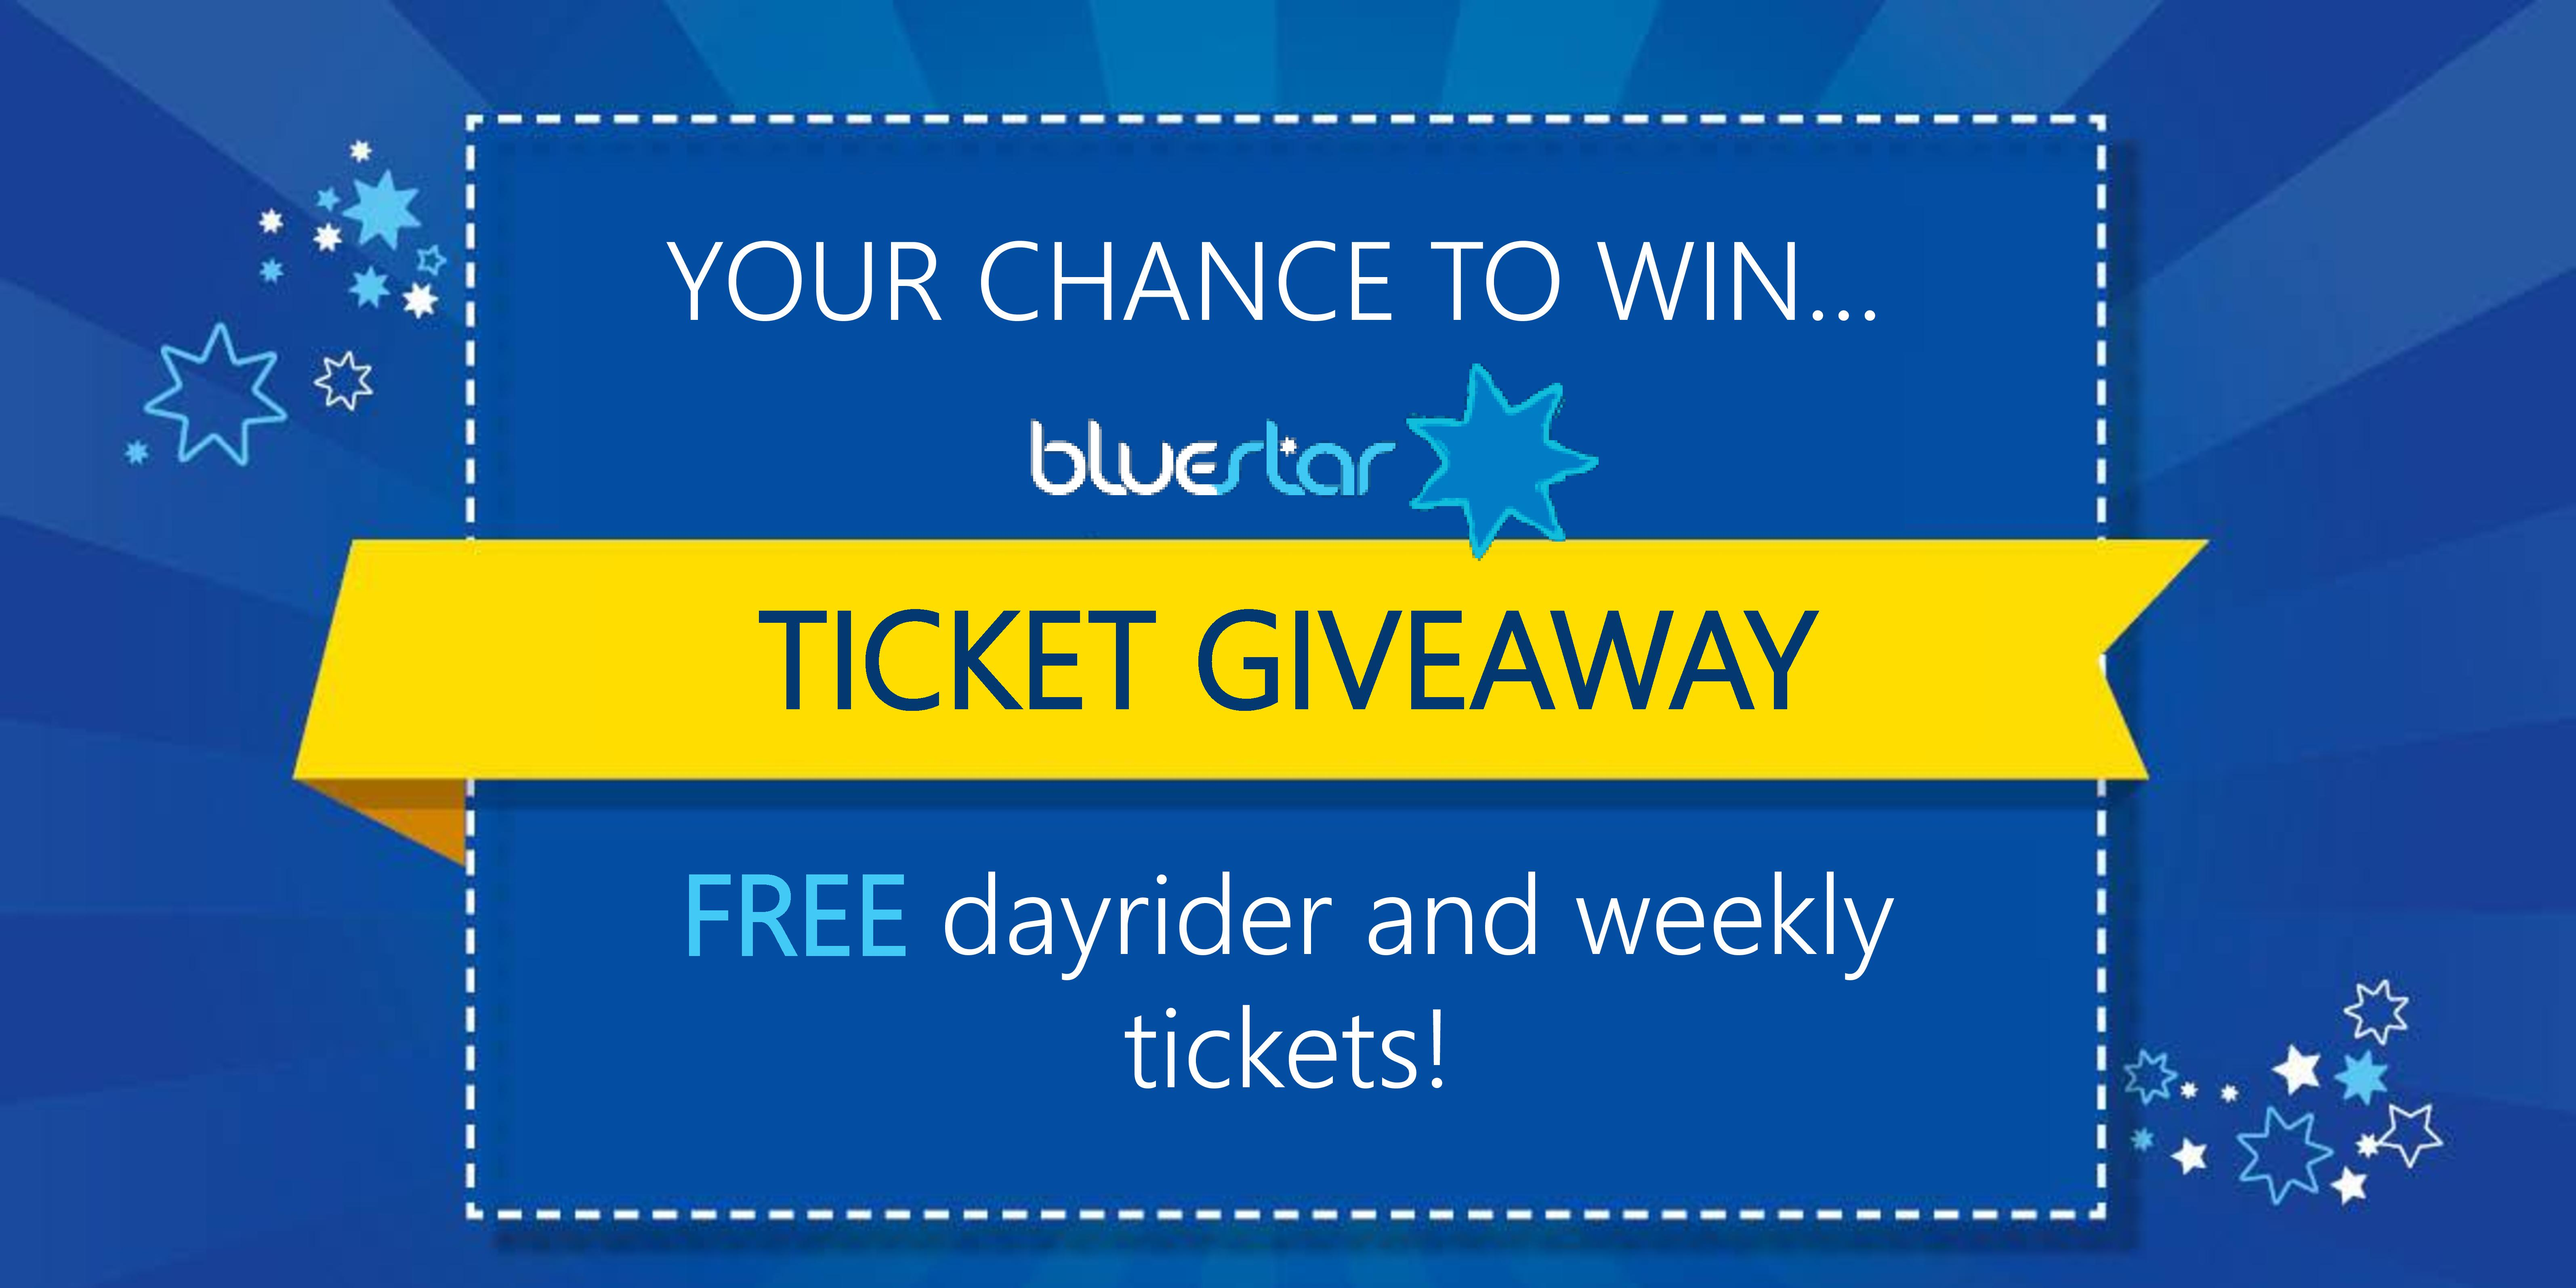 The bluestar ticket giveaway, be in with the chance to win free dayrider and weekly tickets